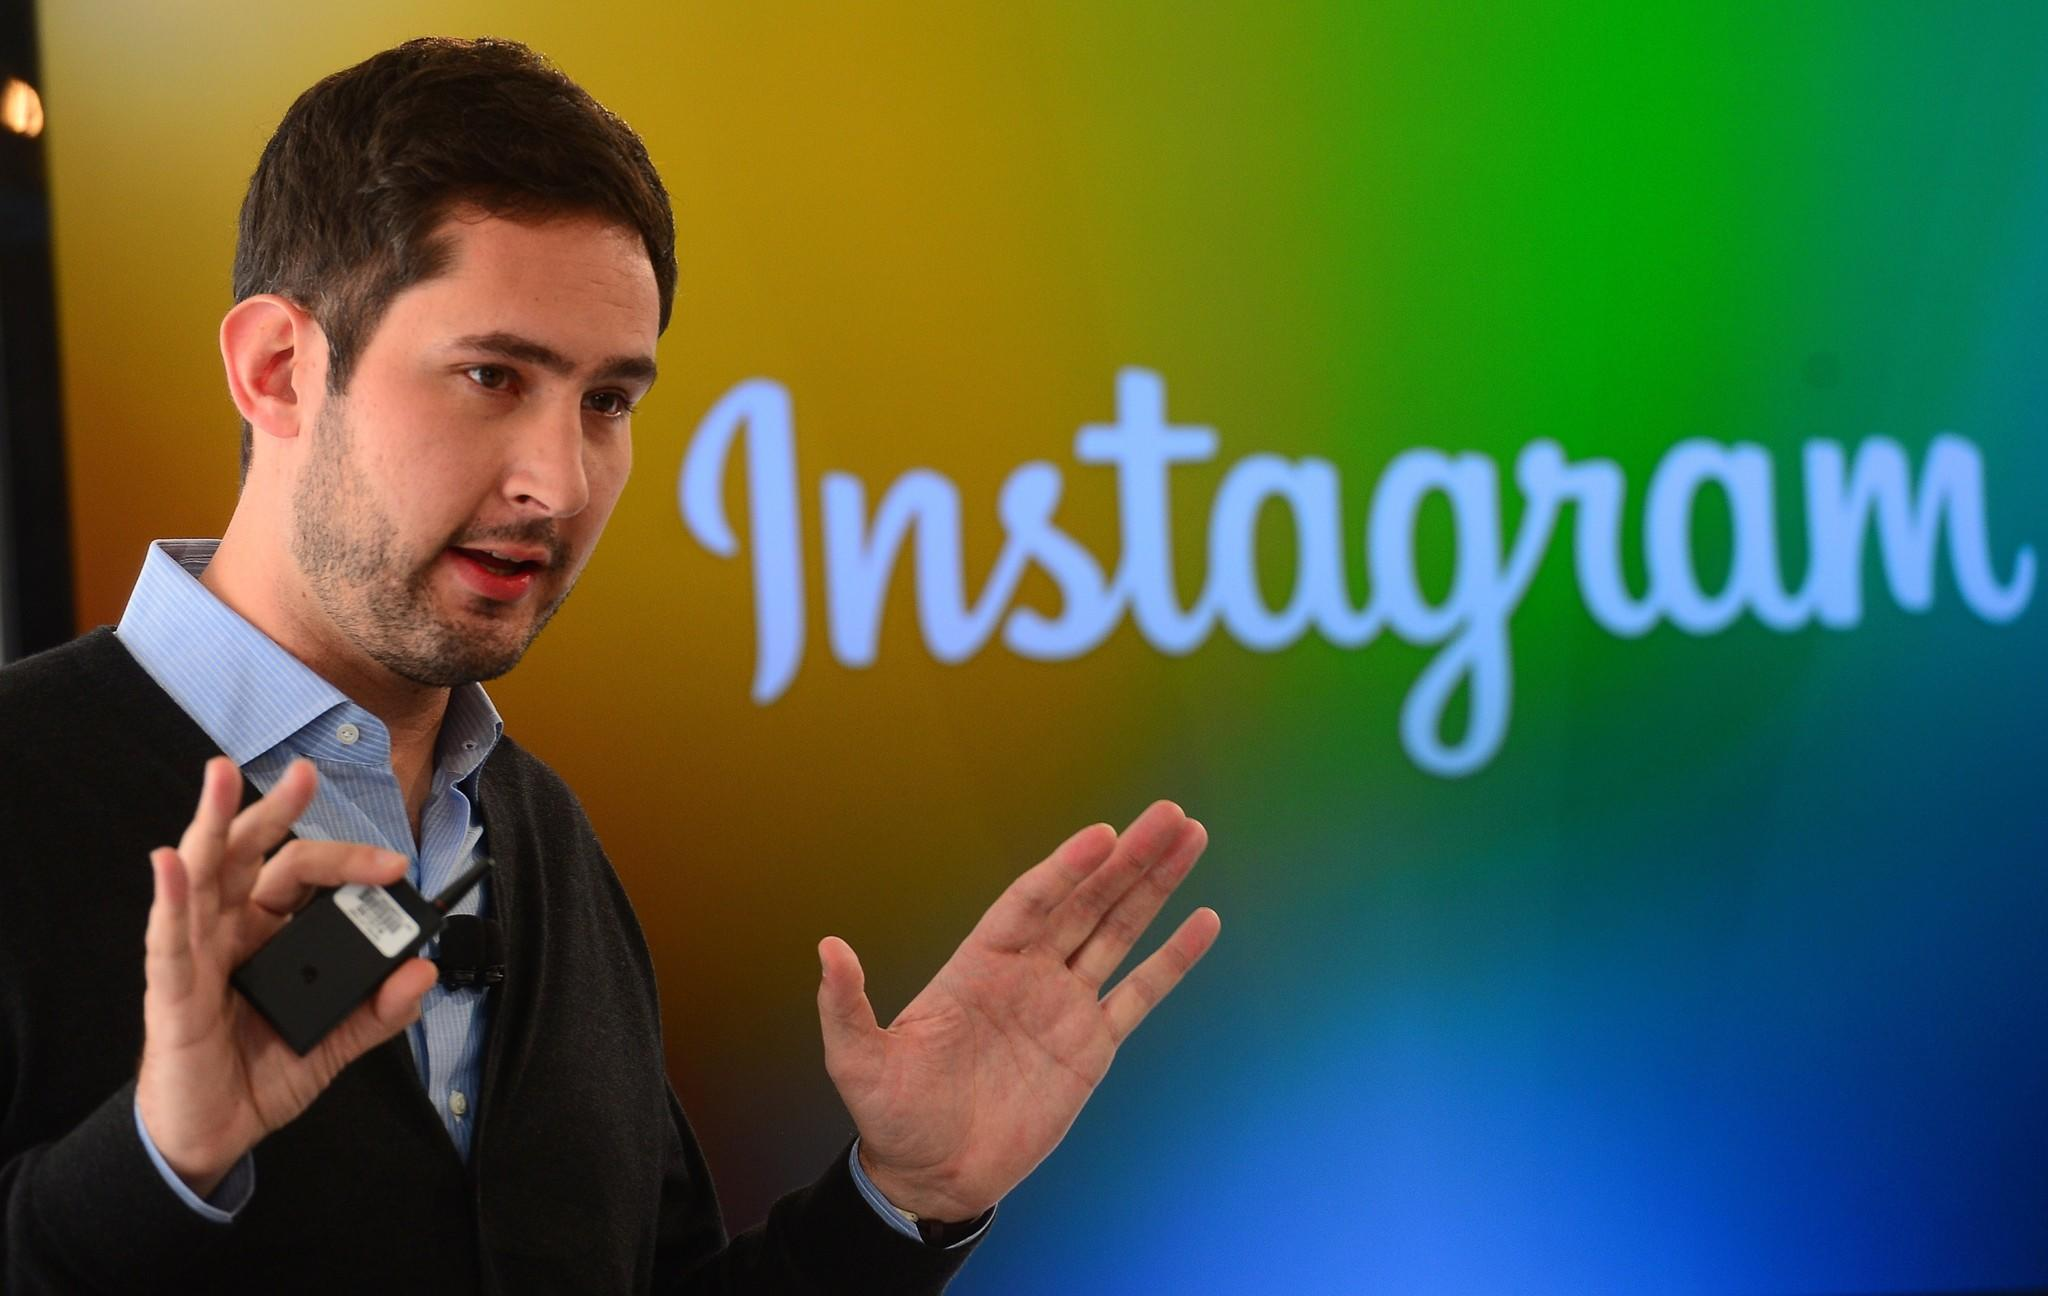 Odds are you've signed at least one contract with a forced arbitration clause in the fine print. They are showing up everywhere from credit card contracts to the Instagram terms of use. Above: Instagram co-founder Kevin Systrom at a press conference in New York on Dec. 12.